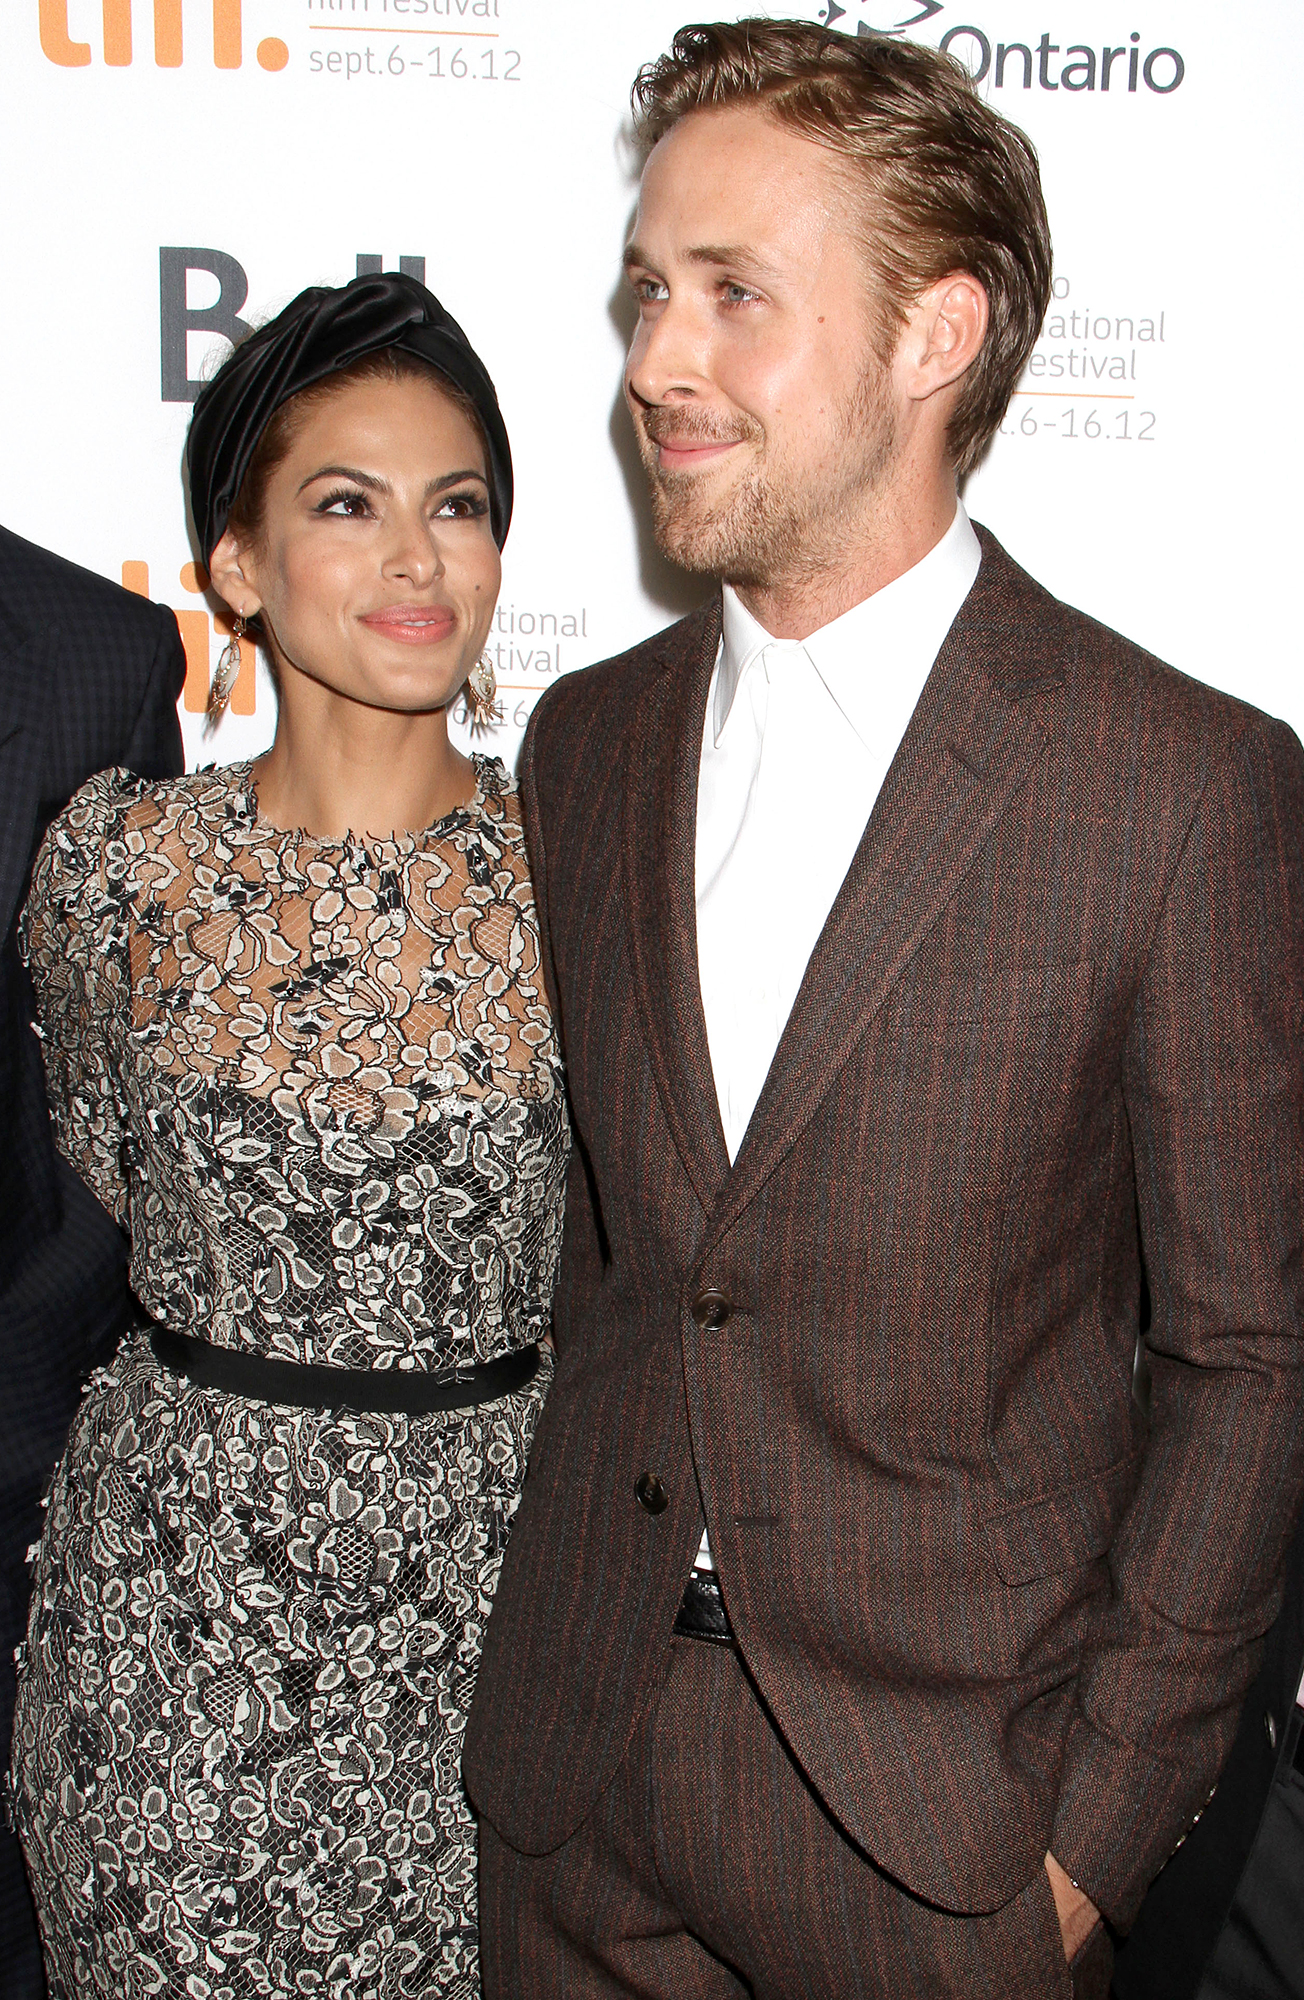 Eva Mendes and Ryan Gosling - Eva Mendes and Ryan Gosling attend the TIFF premiere for 'The Place Beyond The Pines' on September 7, 2012 in Toronto, Canada.